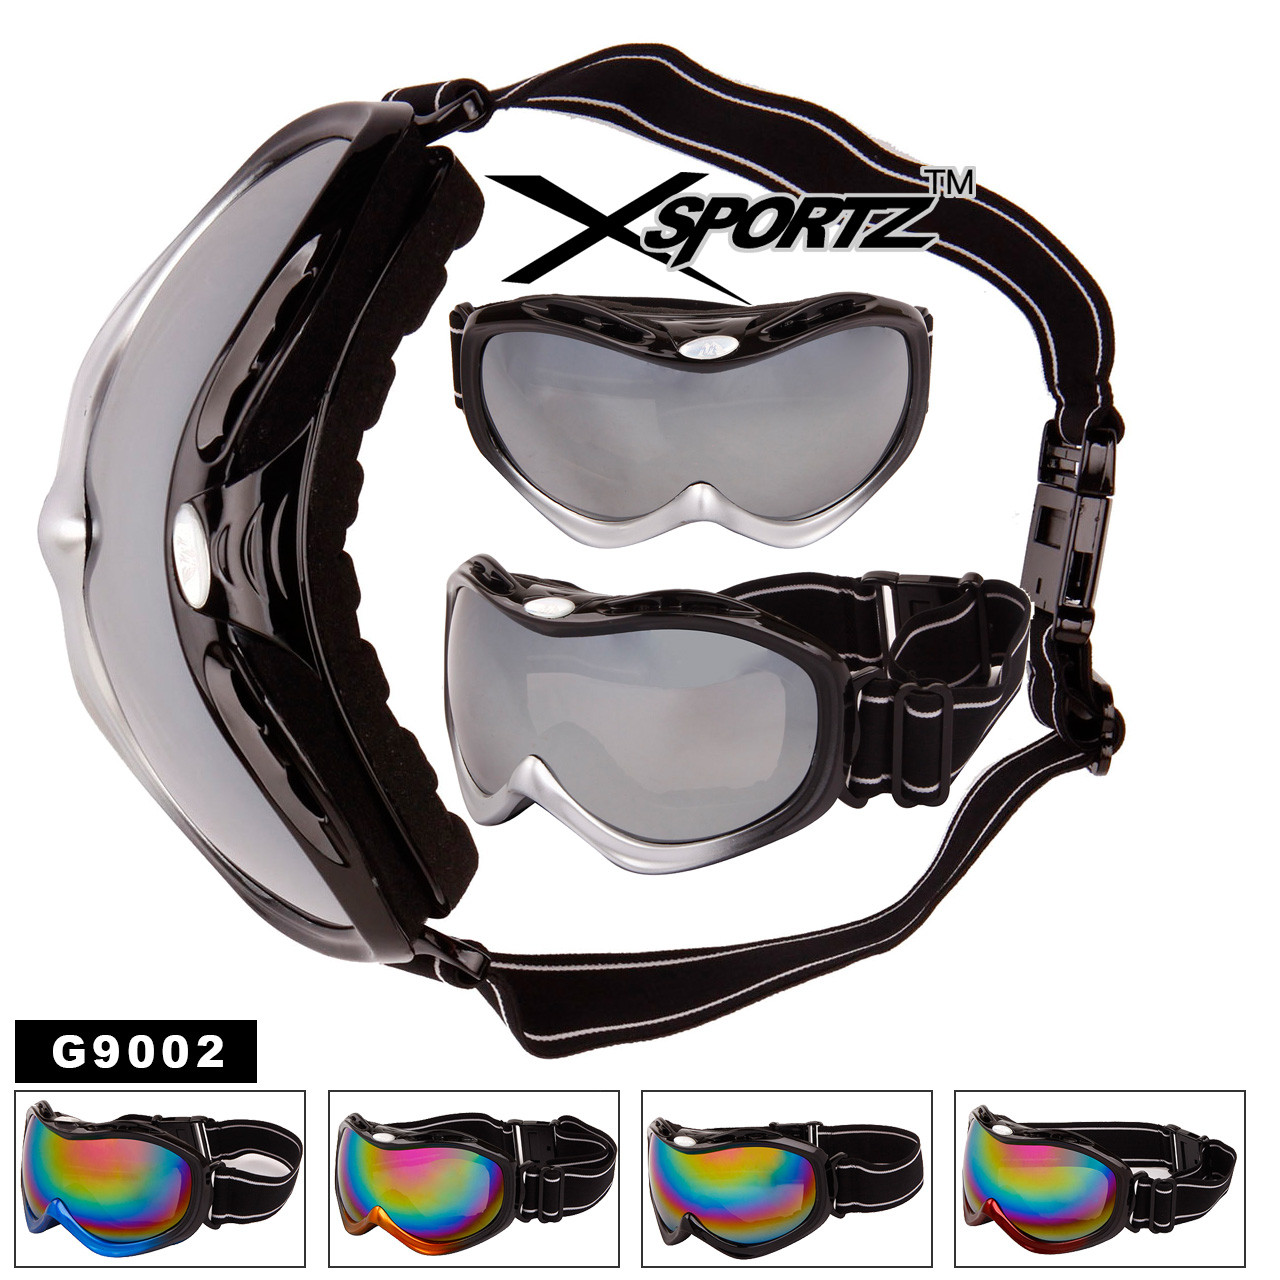 Wholesale Skiing Goggles - Style #G9002 (Assorted Colors) (12 pcs.)